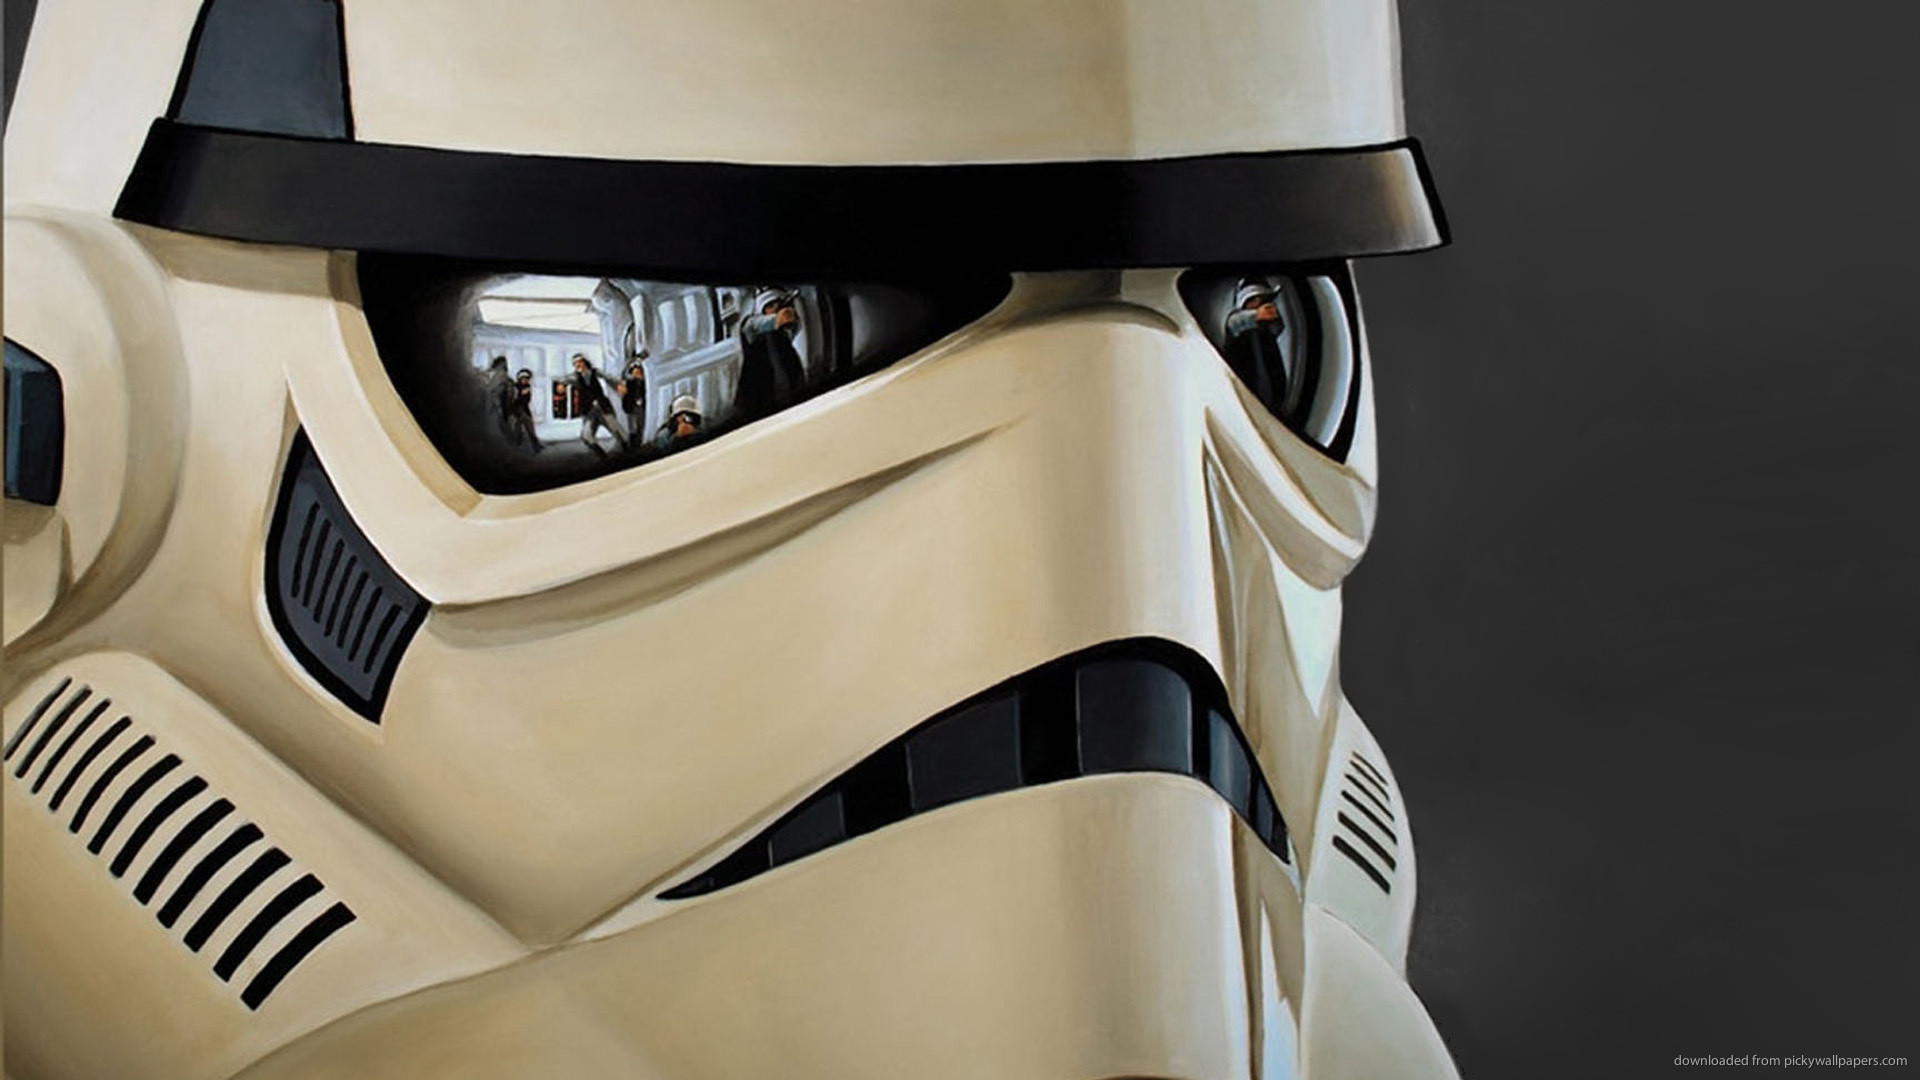 Stormtrooper with reflections wallpaper